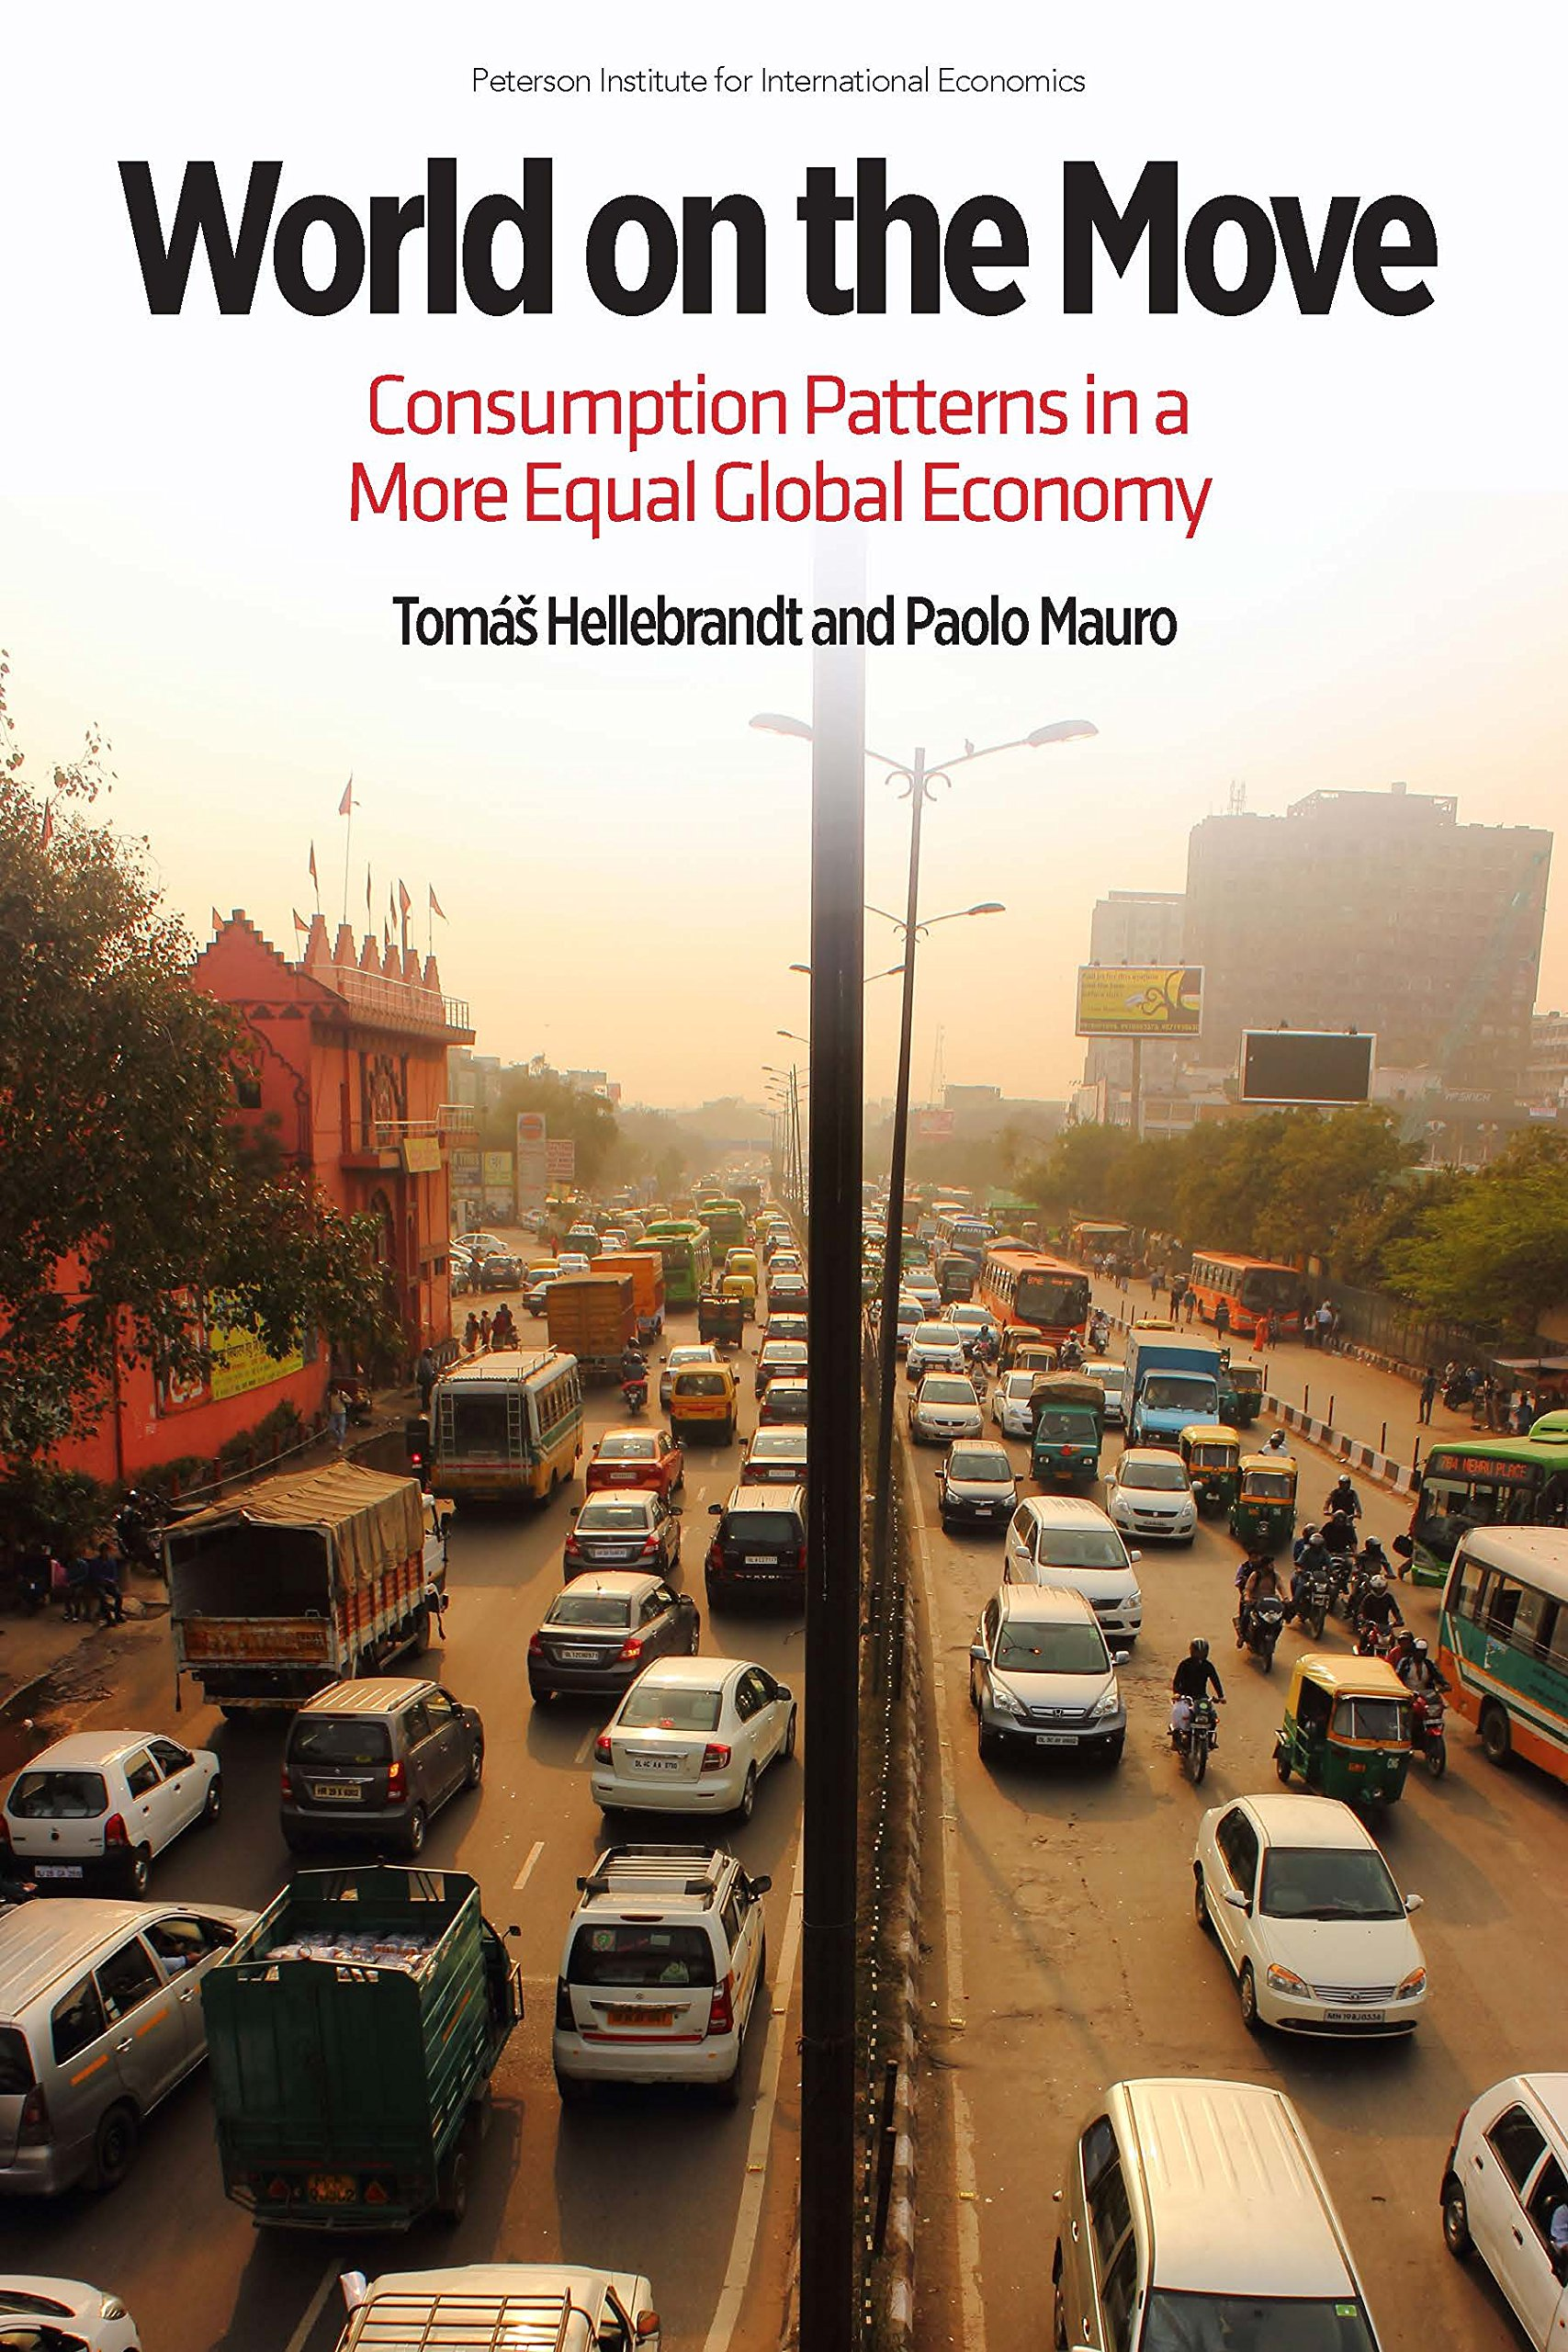 World on the Move: Consumption Patterns in a More Equal Global Economy (Policy Analyses in International Economics Book 105)